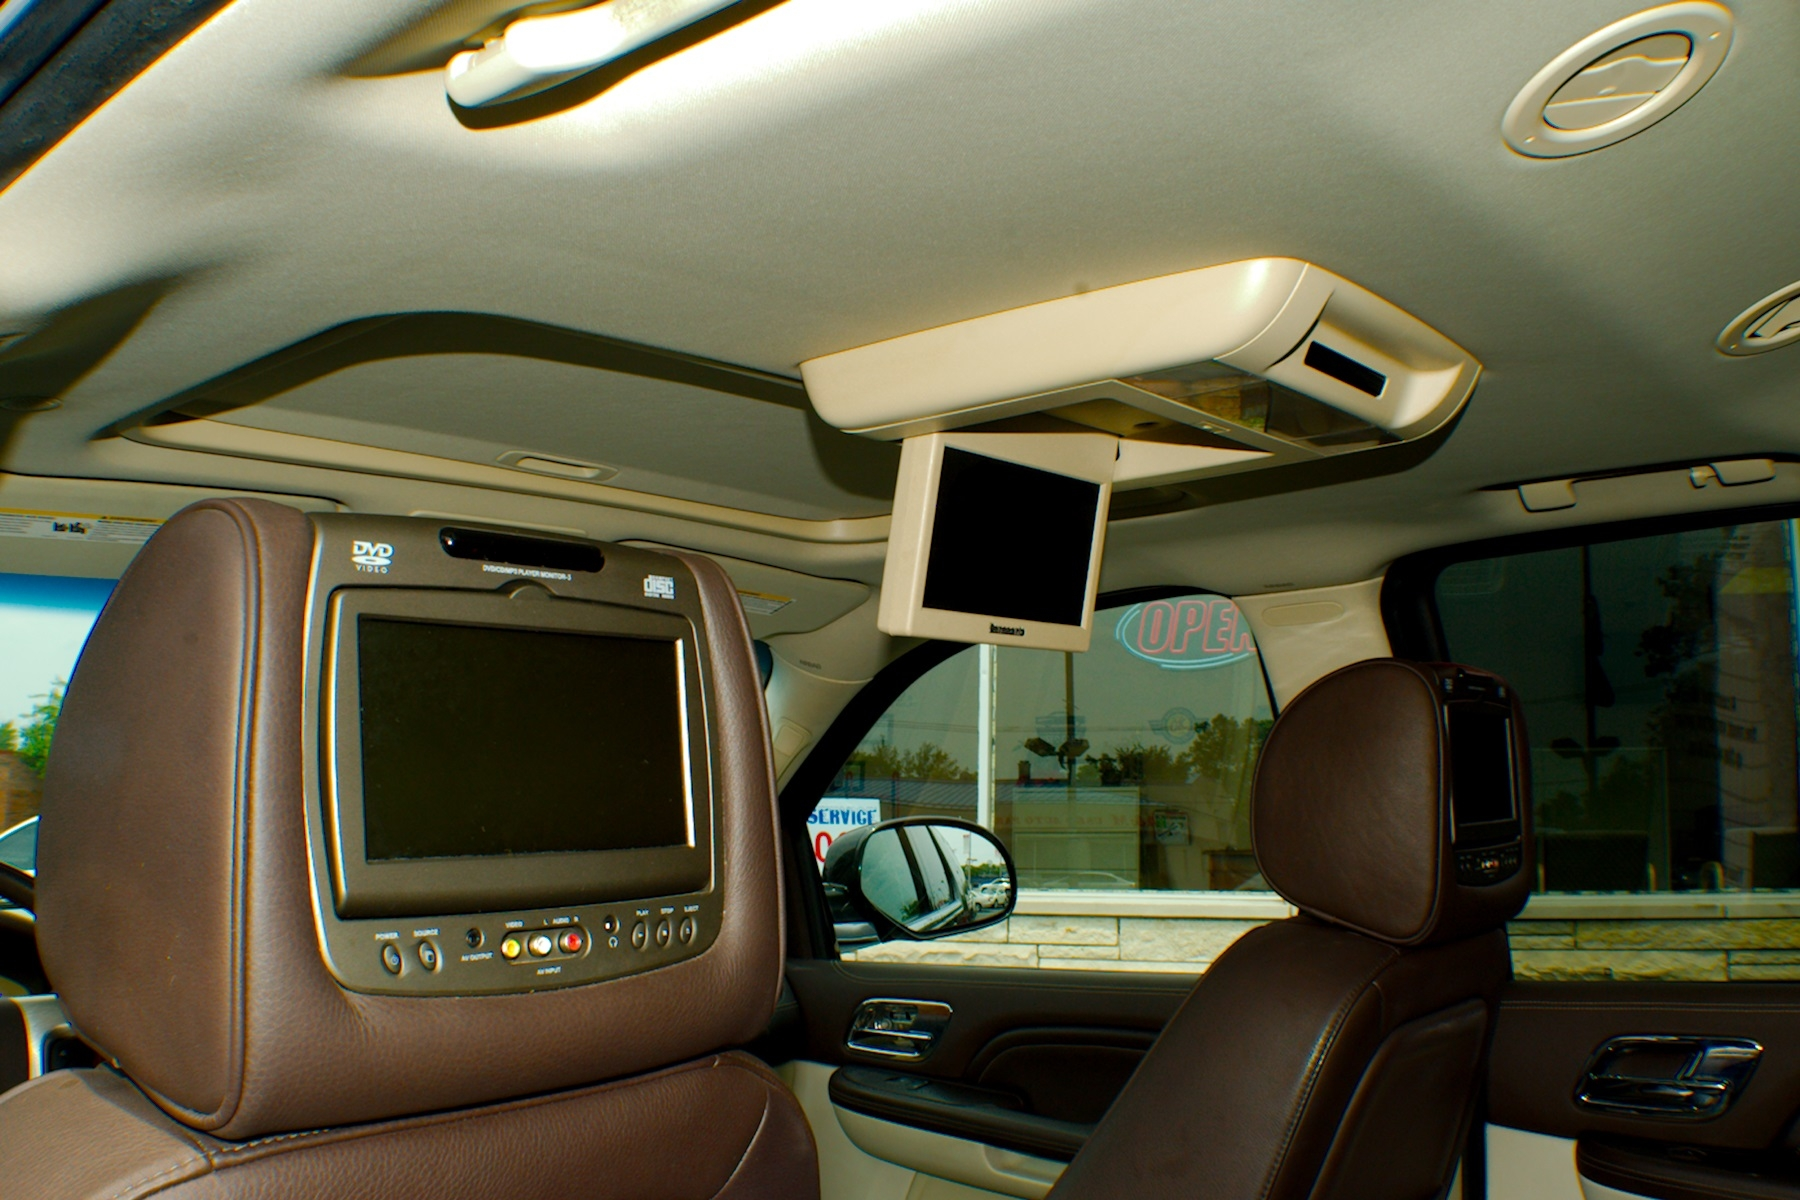 2008 Cadillac Escalade Black Platinum Edition 4x4 SUV Sale Riverwoods Tower Lakes Vernon Hills